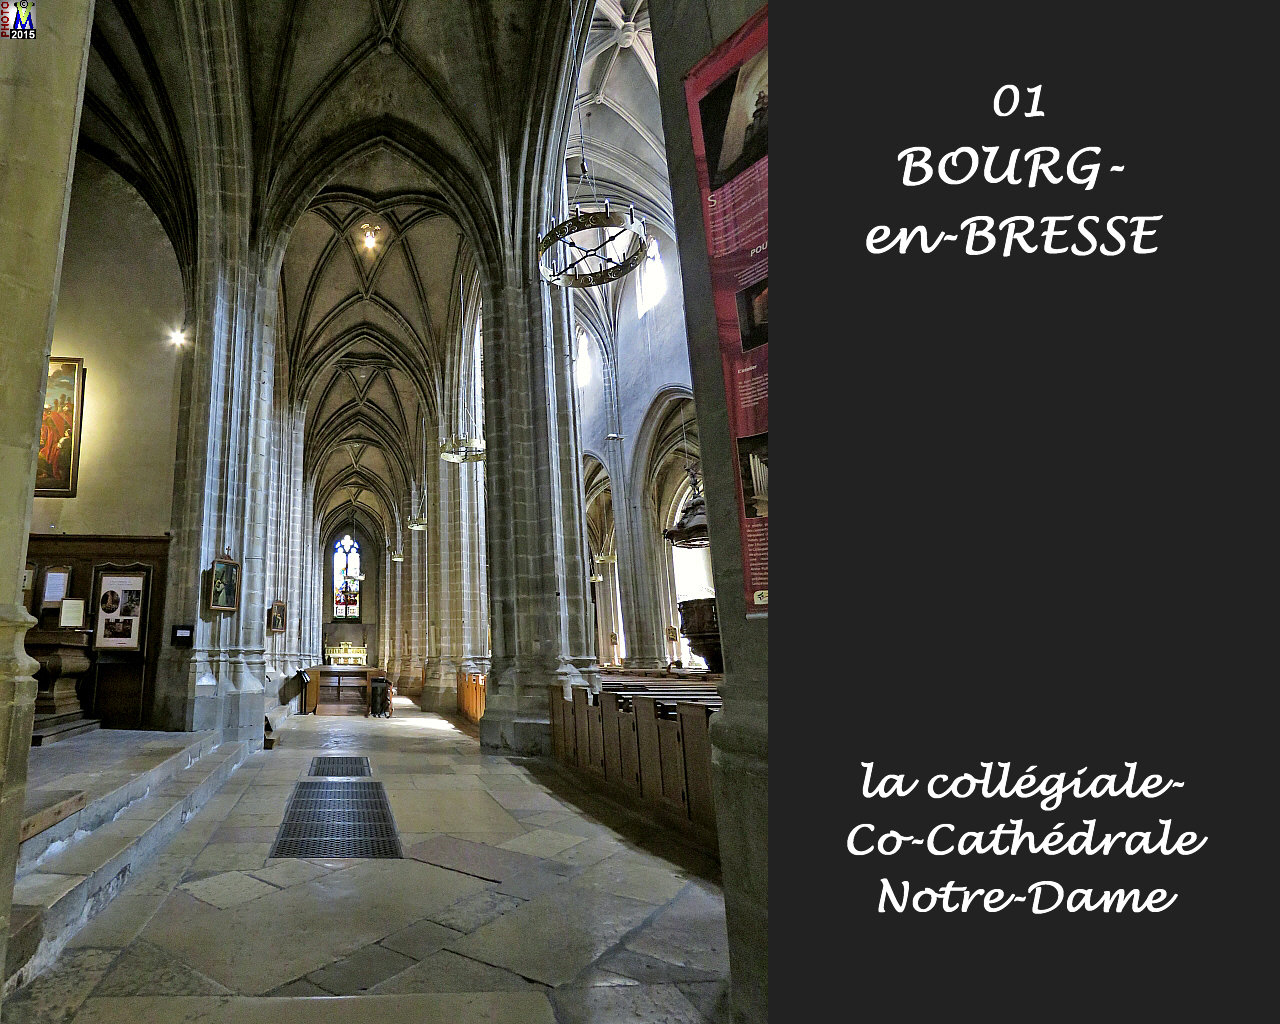 01BOURG-BRESSE_cathedrale_204.jpg